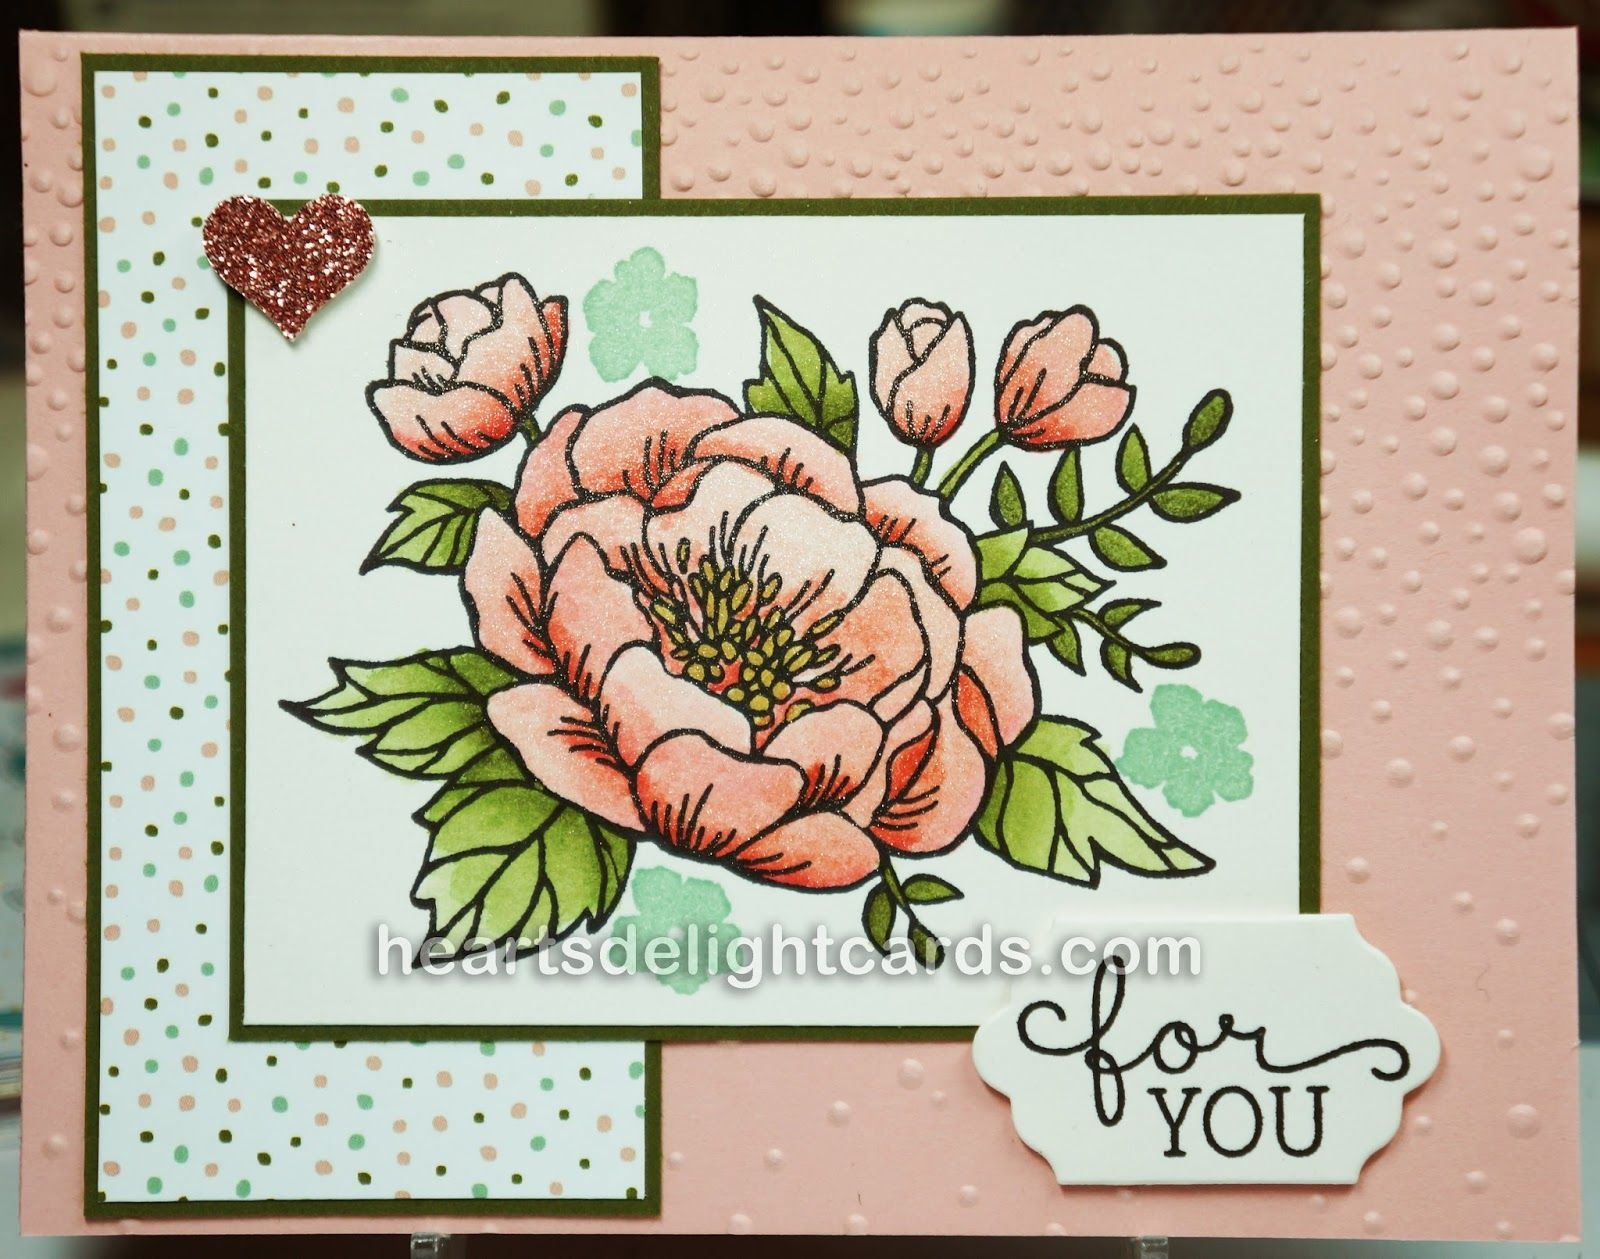 Heart's Delight Cards: More Sneak Peeks!